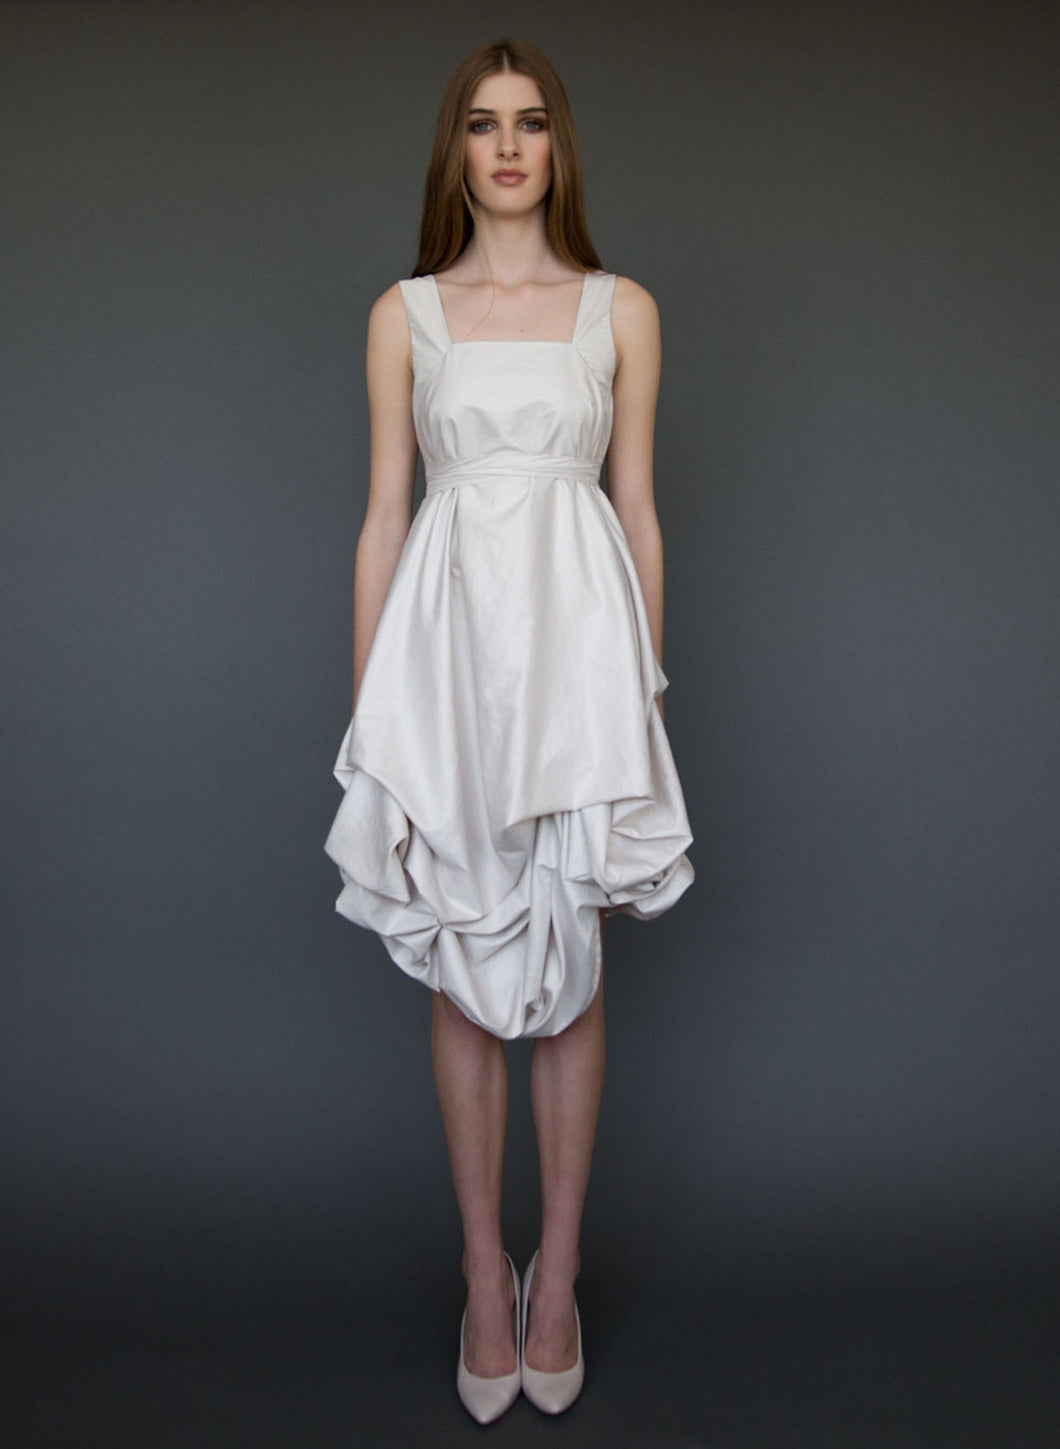 Model posing full length wearing short, belted, A-line wedding dress with straps.